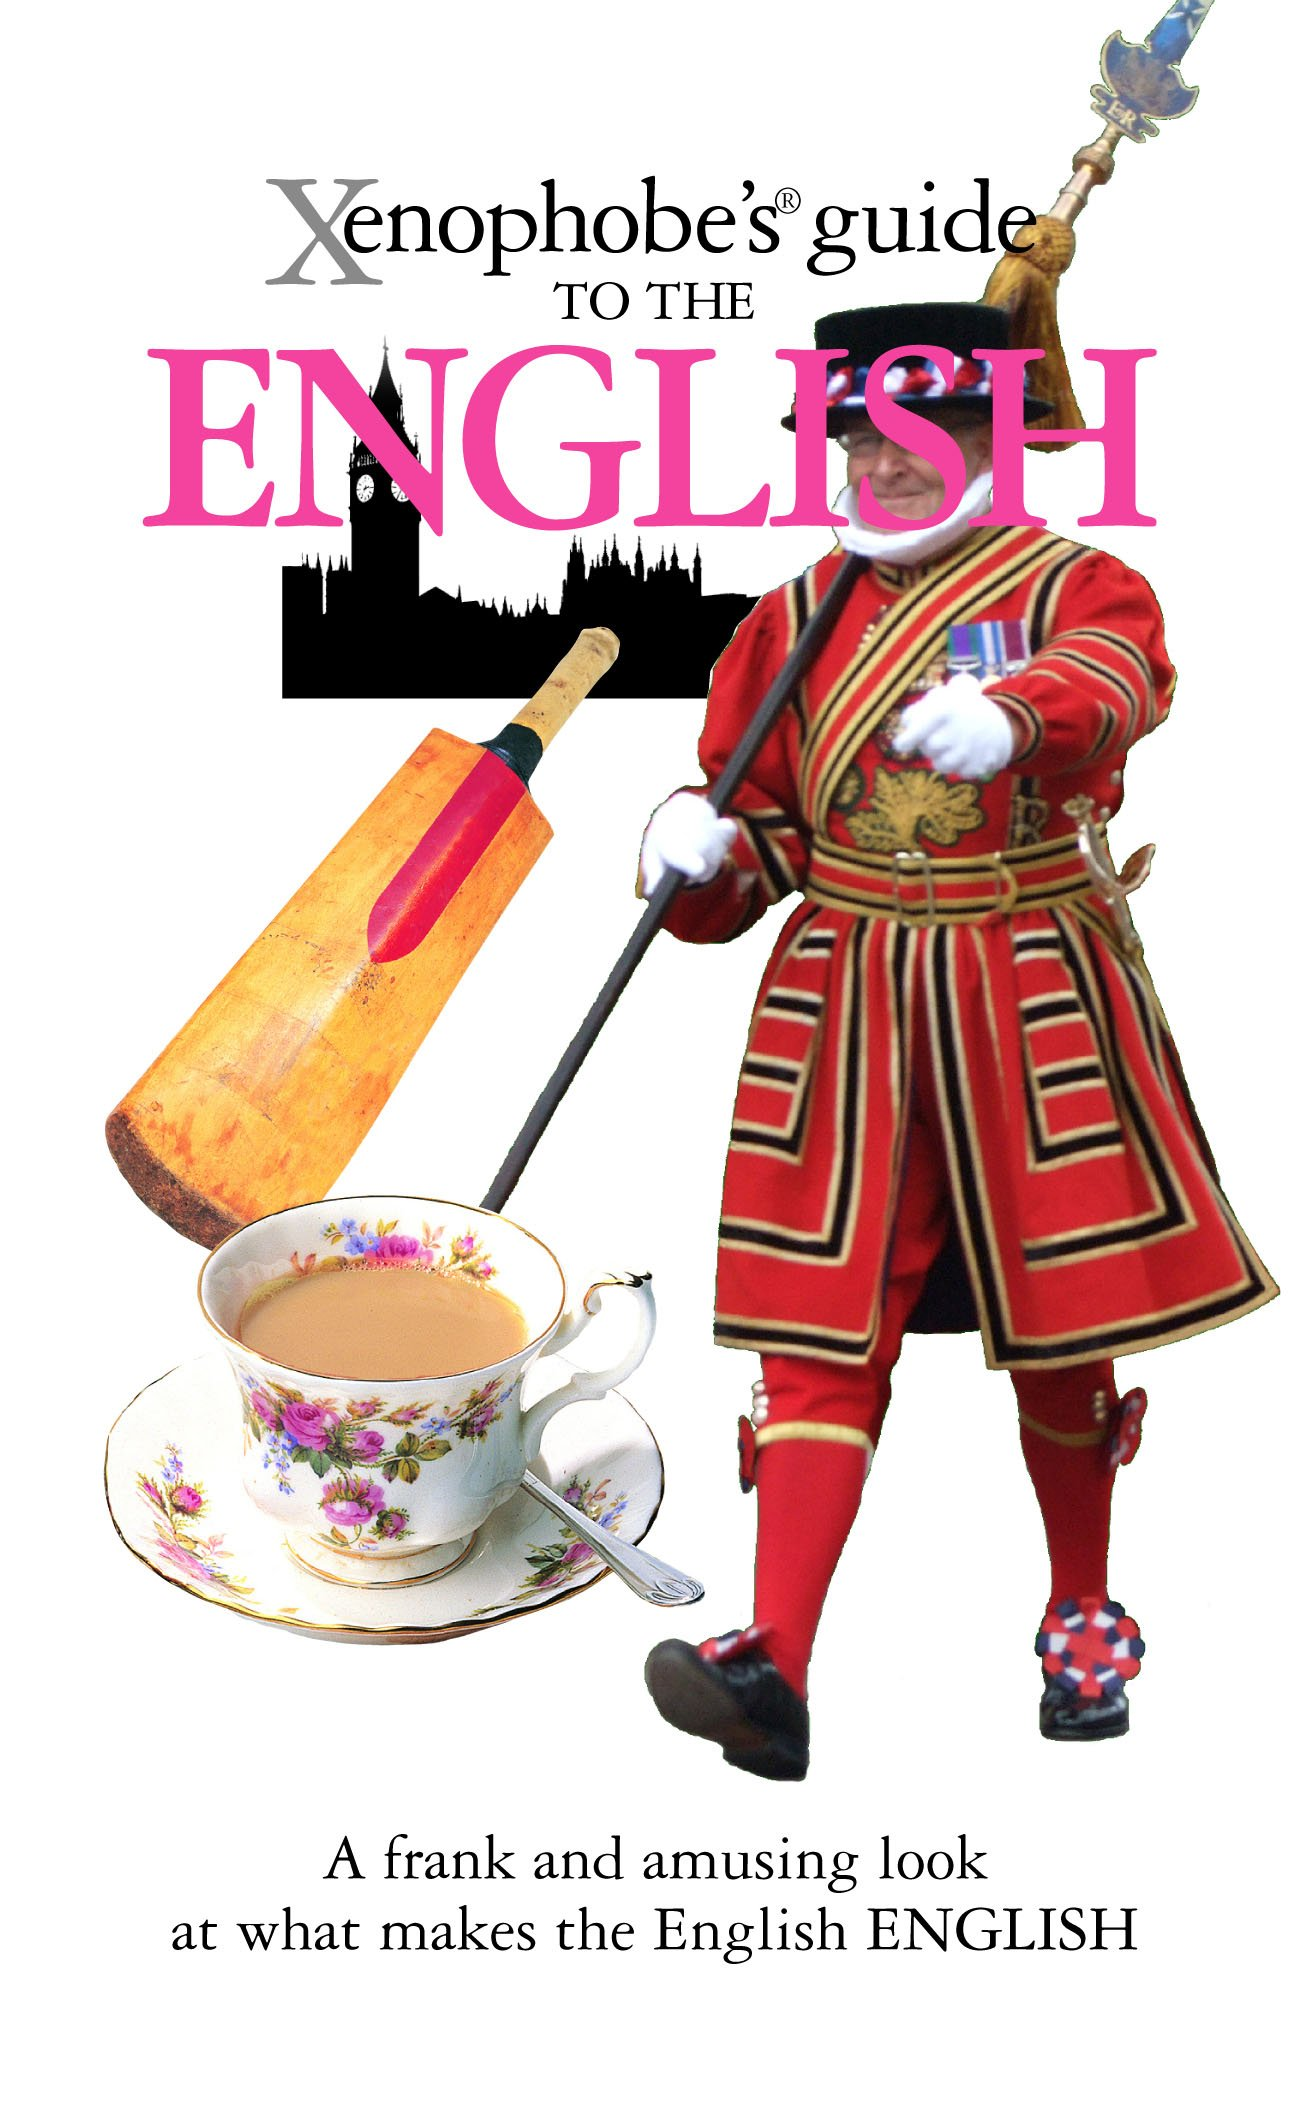 The Xenophobe's Guide to the English